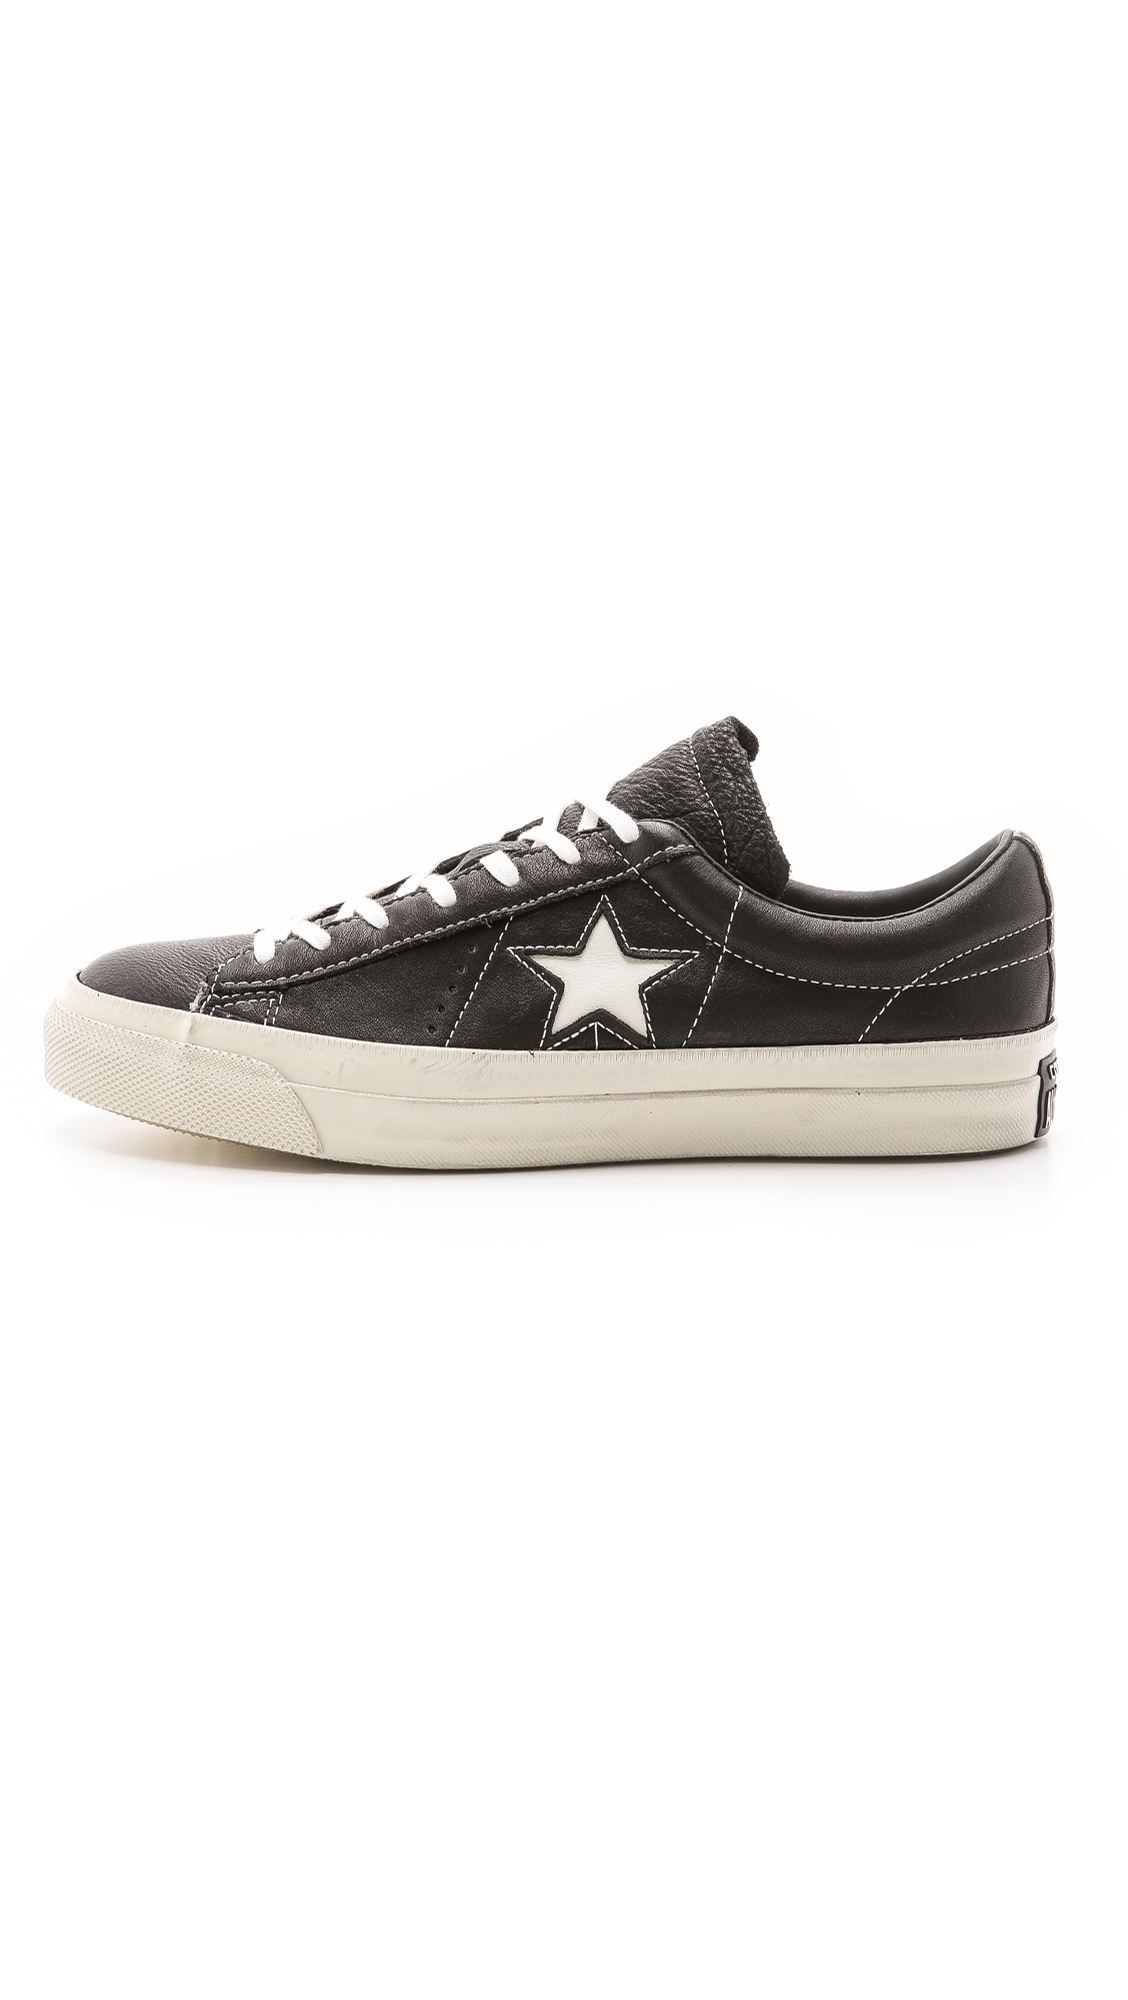 cb021339c527 Gallery. Previously sold at  East Dane · Men s John Varvatos Converse ...